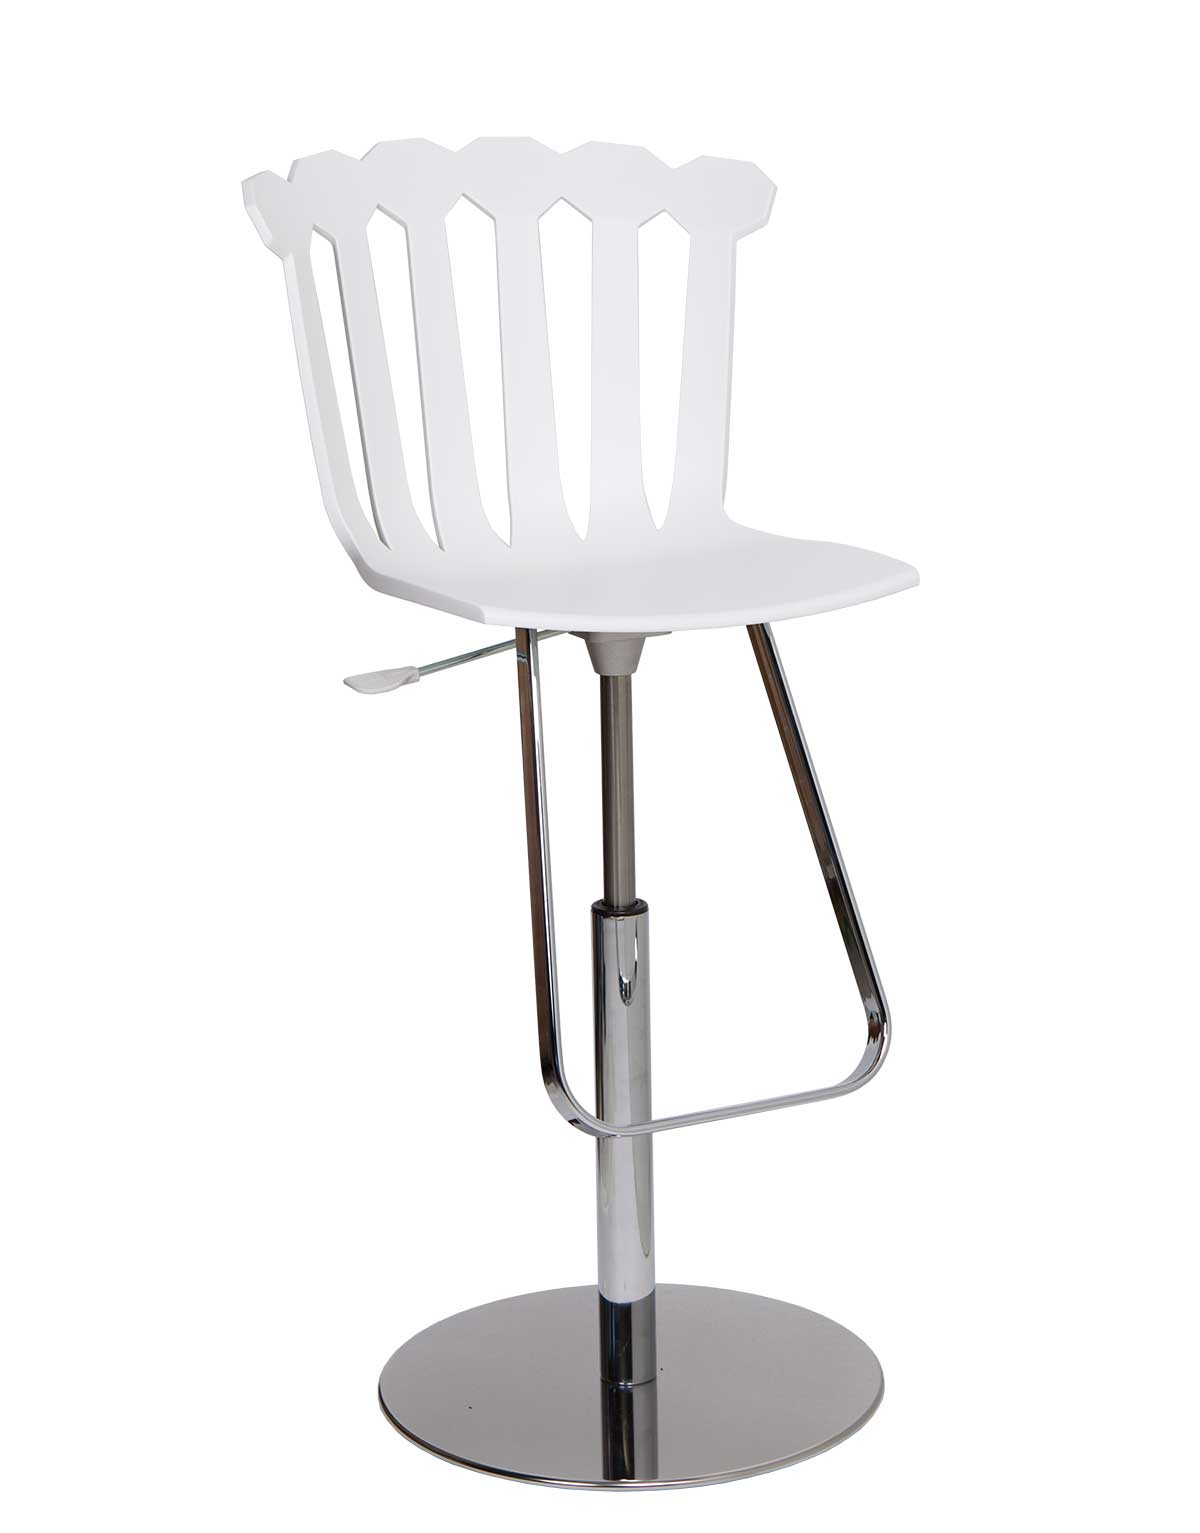 Tulip, entirely handcrafted in Italy, is an original adjustable bar stool, available in 3 different colours. Shop now for metal bar stool, made in Italy.